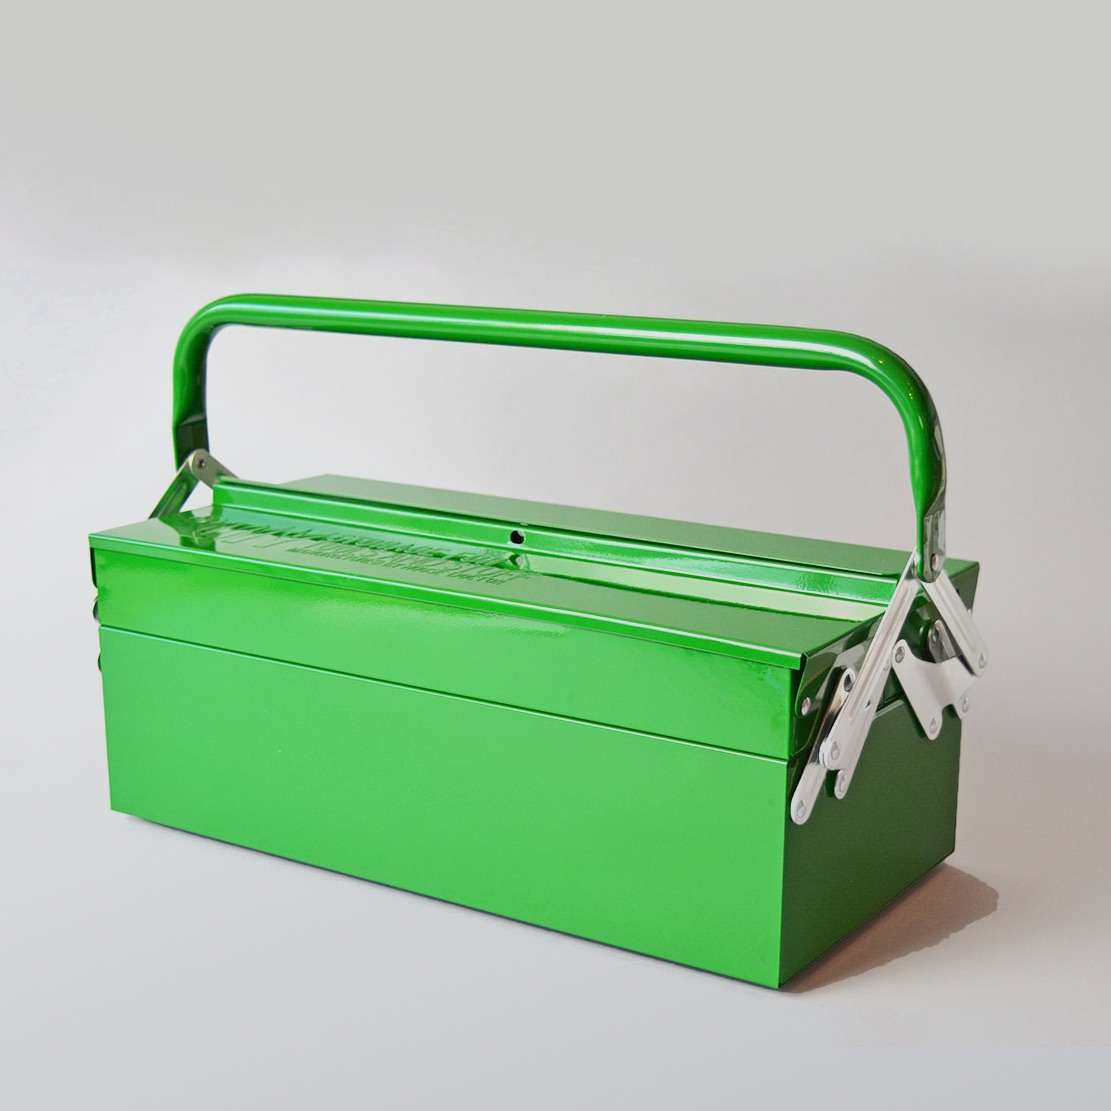 Wedding Gift Tool Box : toolbox green 45 00 solid steel expanding toolbox designed in denmark ...